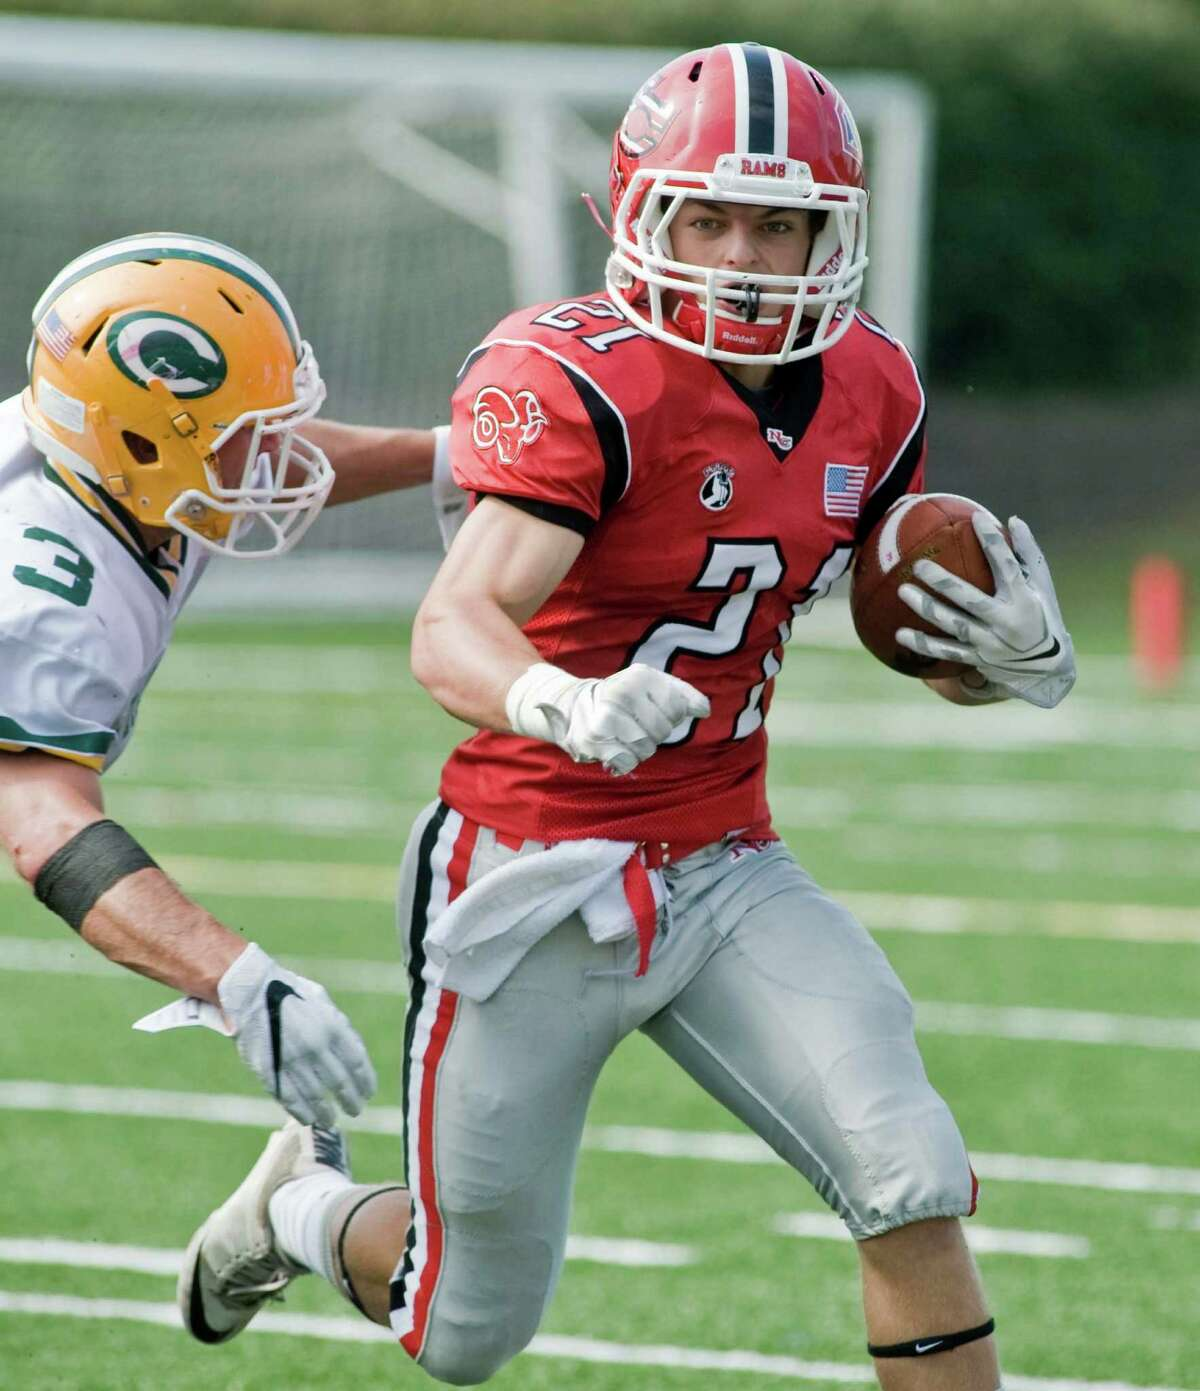 New Canaan High School's Graham Braden carries the ball in a game against Trinity Catholic High School, played at New Canaan. Saturday, Sept. 10, 2016